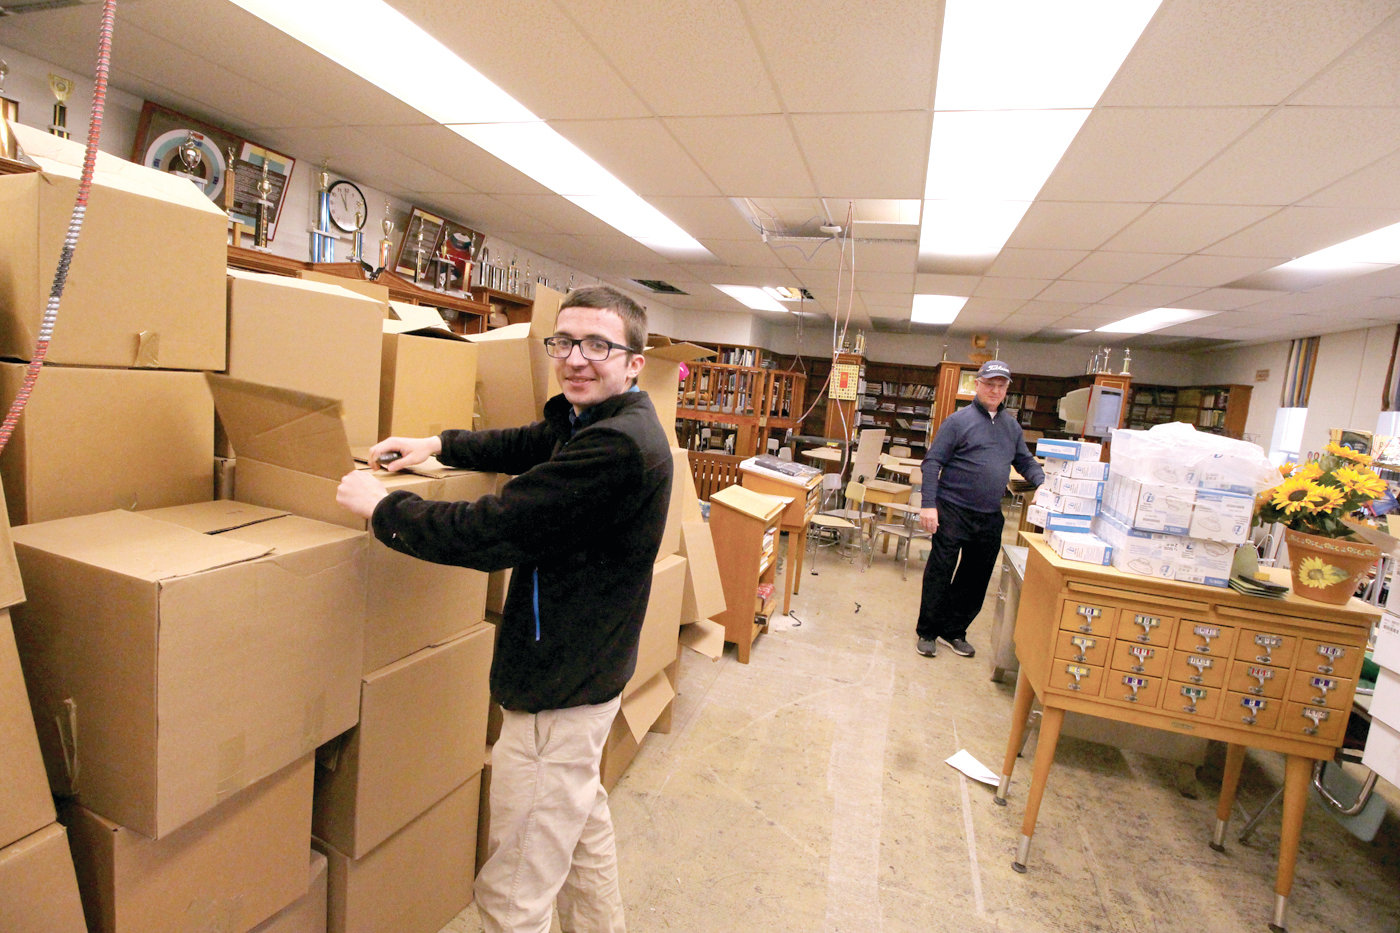 THINKING CHRISTMAS: Cody DiLibero and Joseph Luszcz break down cardboard boxes that had been used for storage of books for a second use during the church Christmas bazaar.